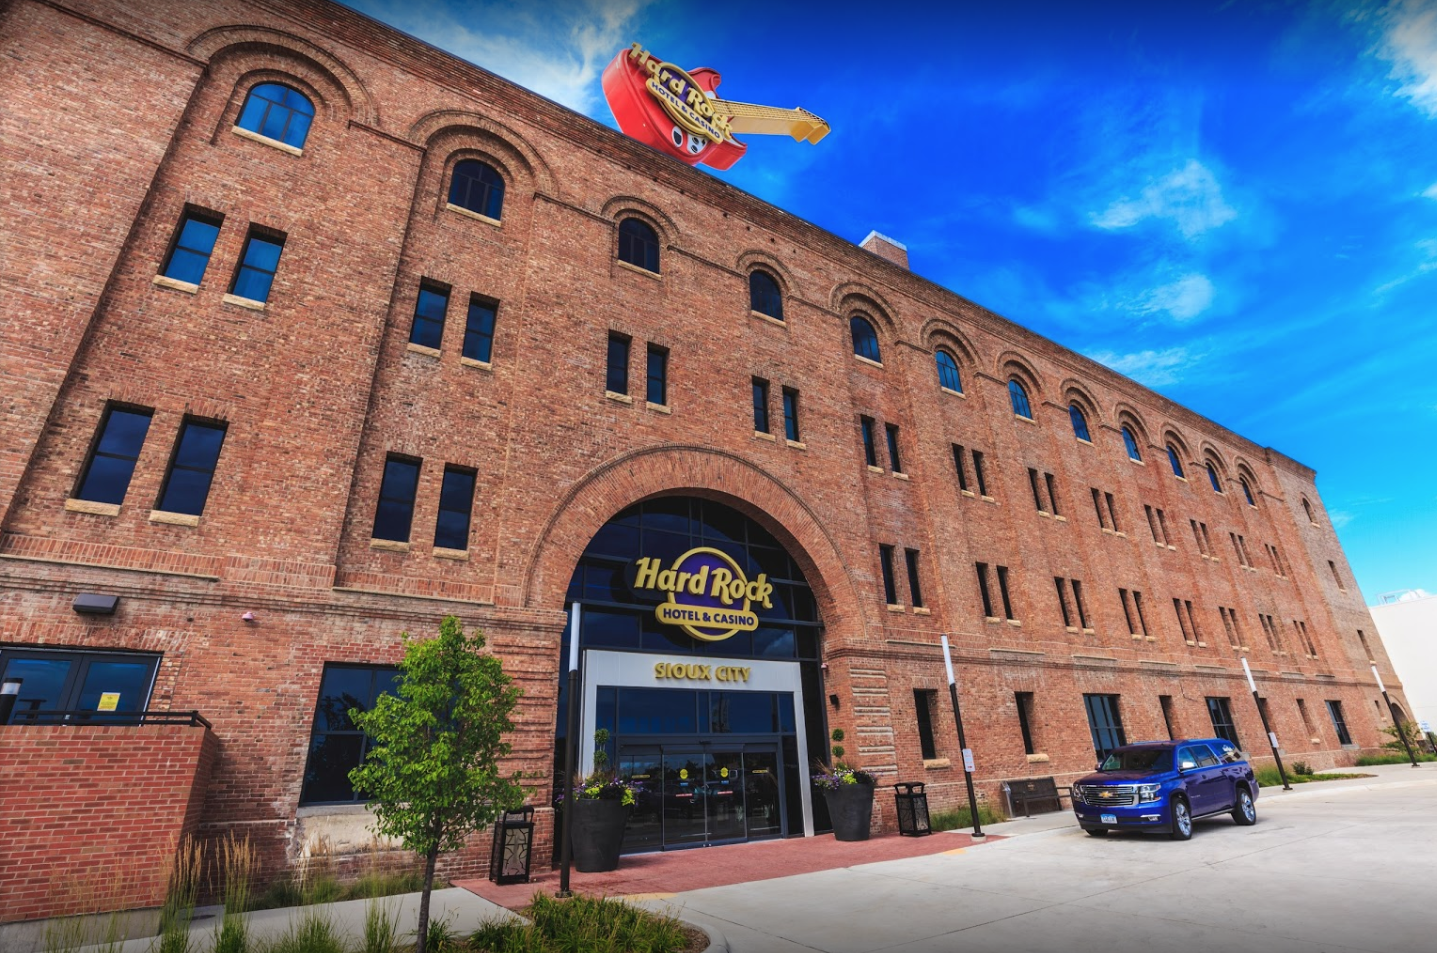 HARD ROCK HOTEL AND CASINO SIOUX CITY -